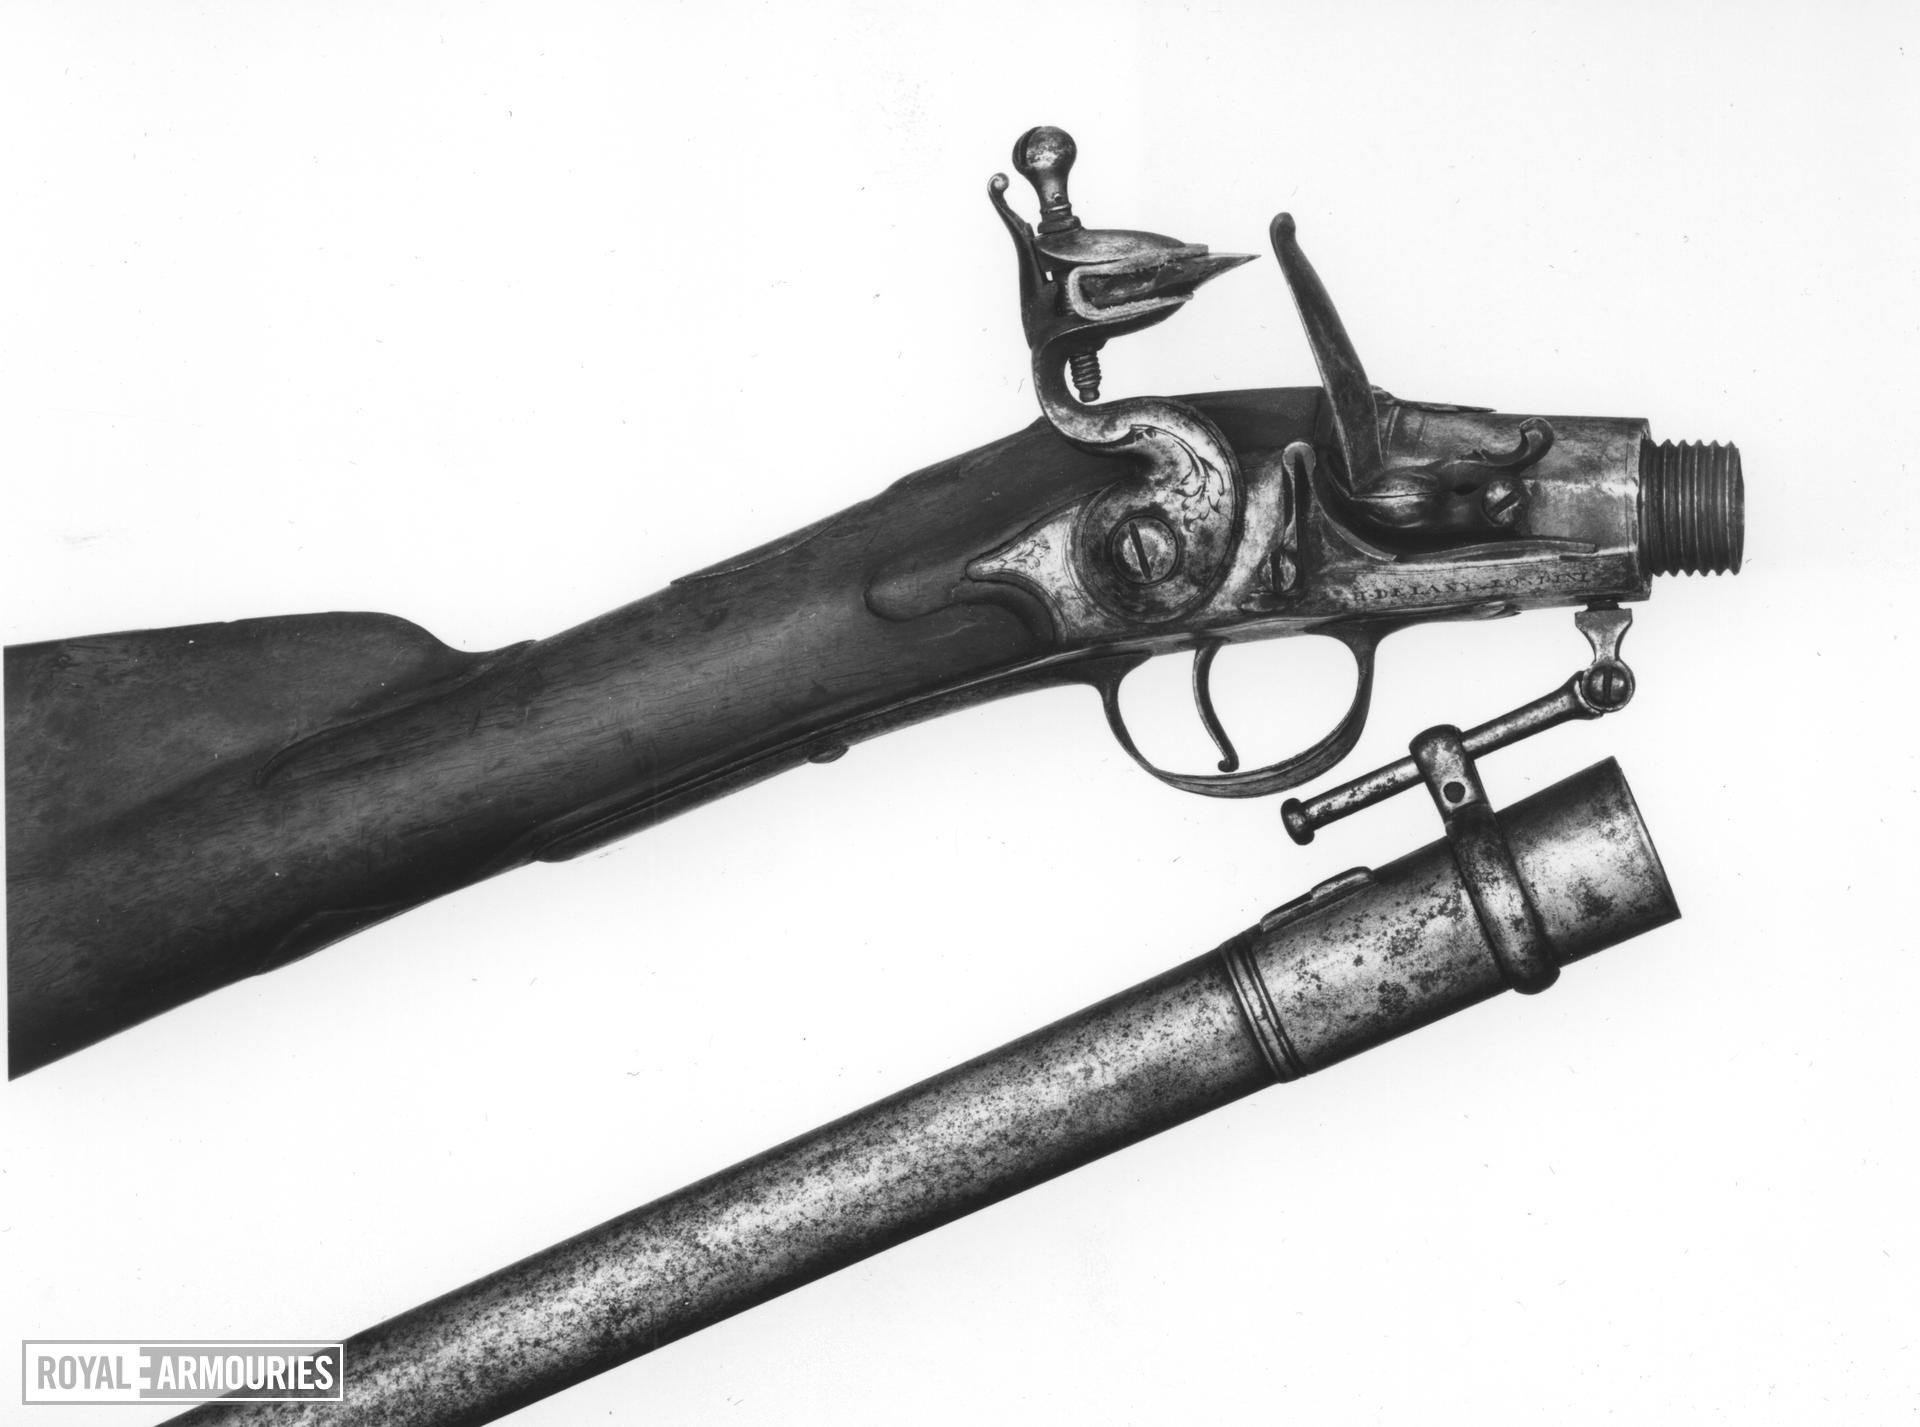 Flintlock muzzle-loading carbine - By Henry Delaney